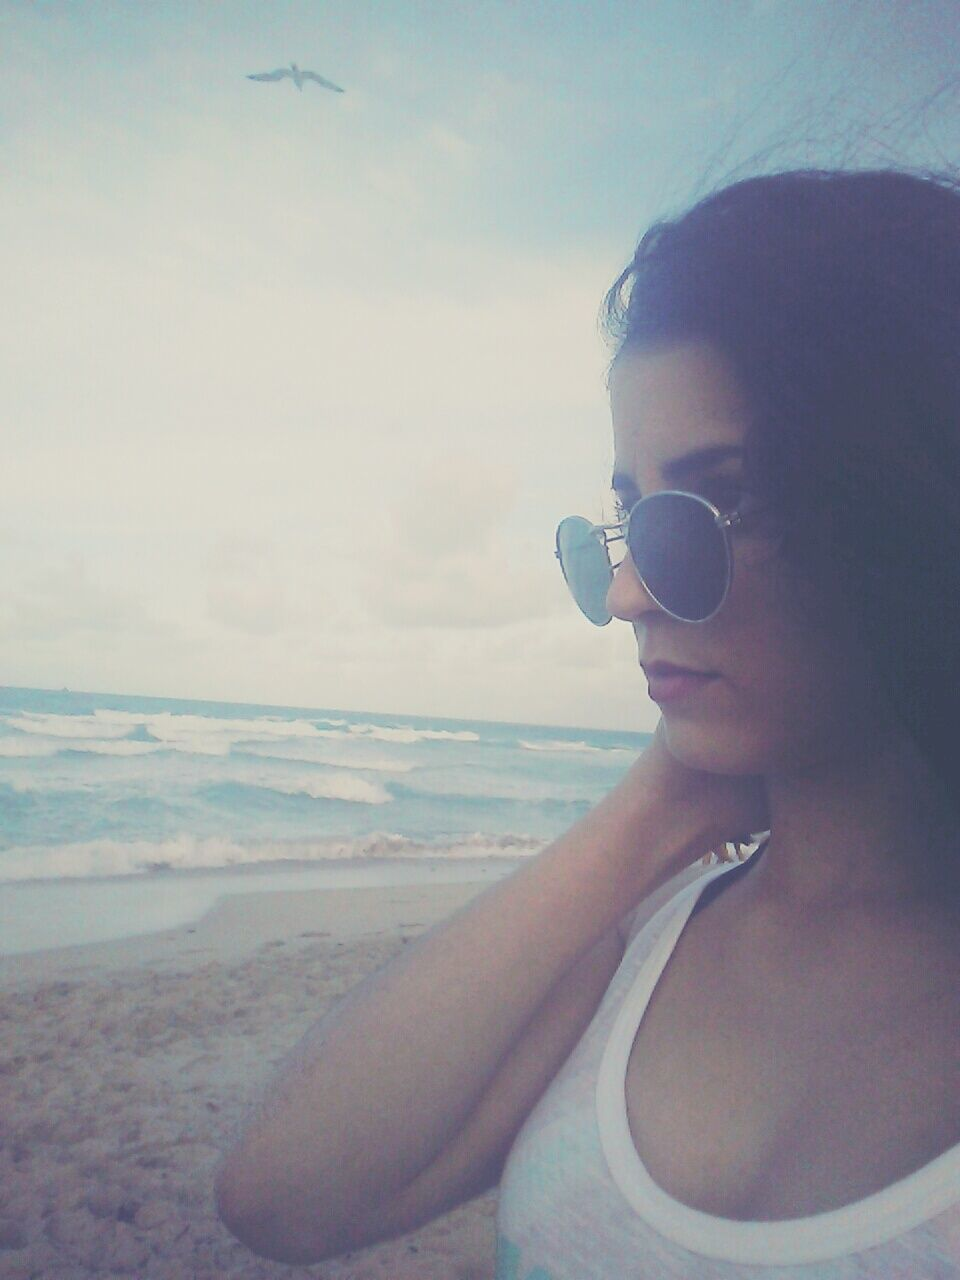 YOUNG WOMAN WEARING SUNGLASSES AT BEACH